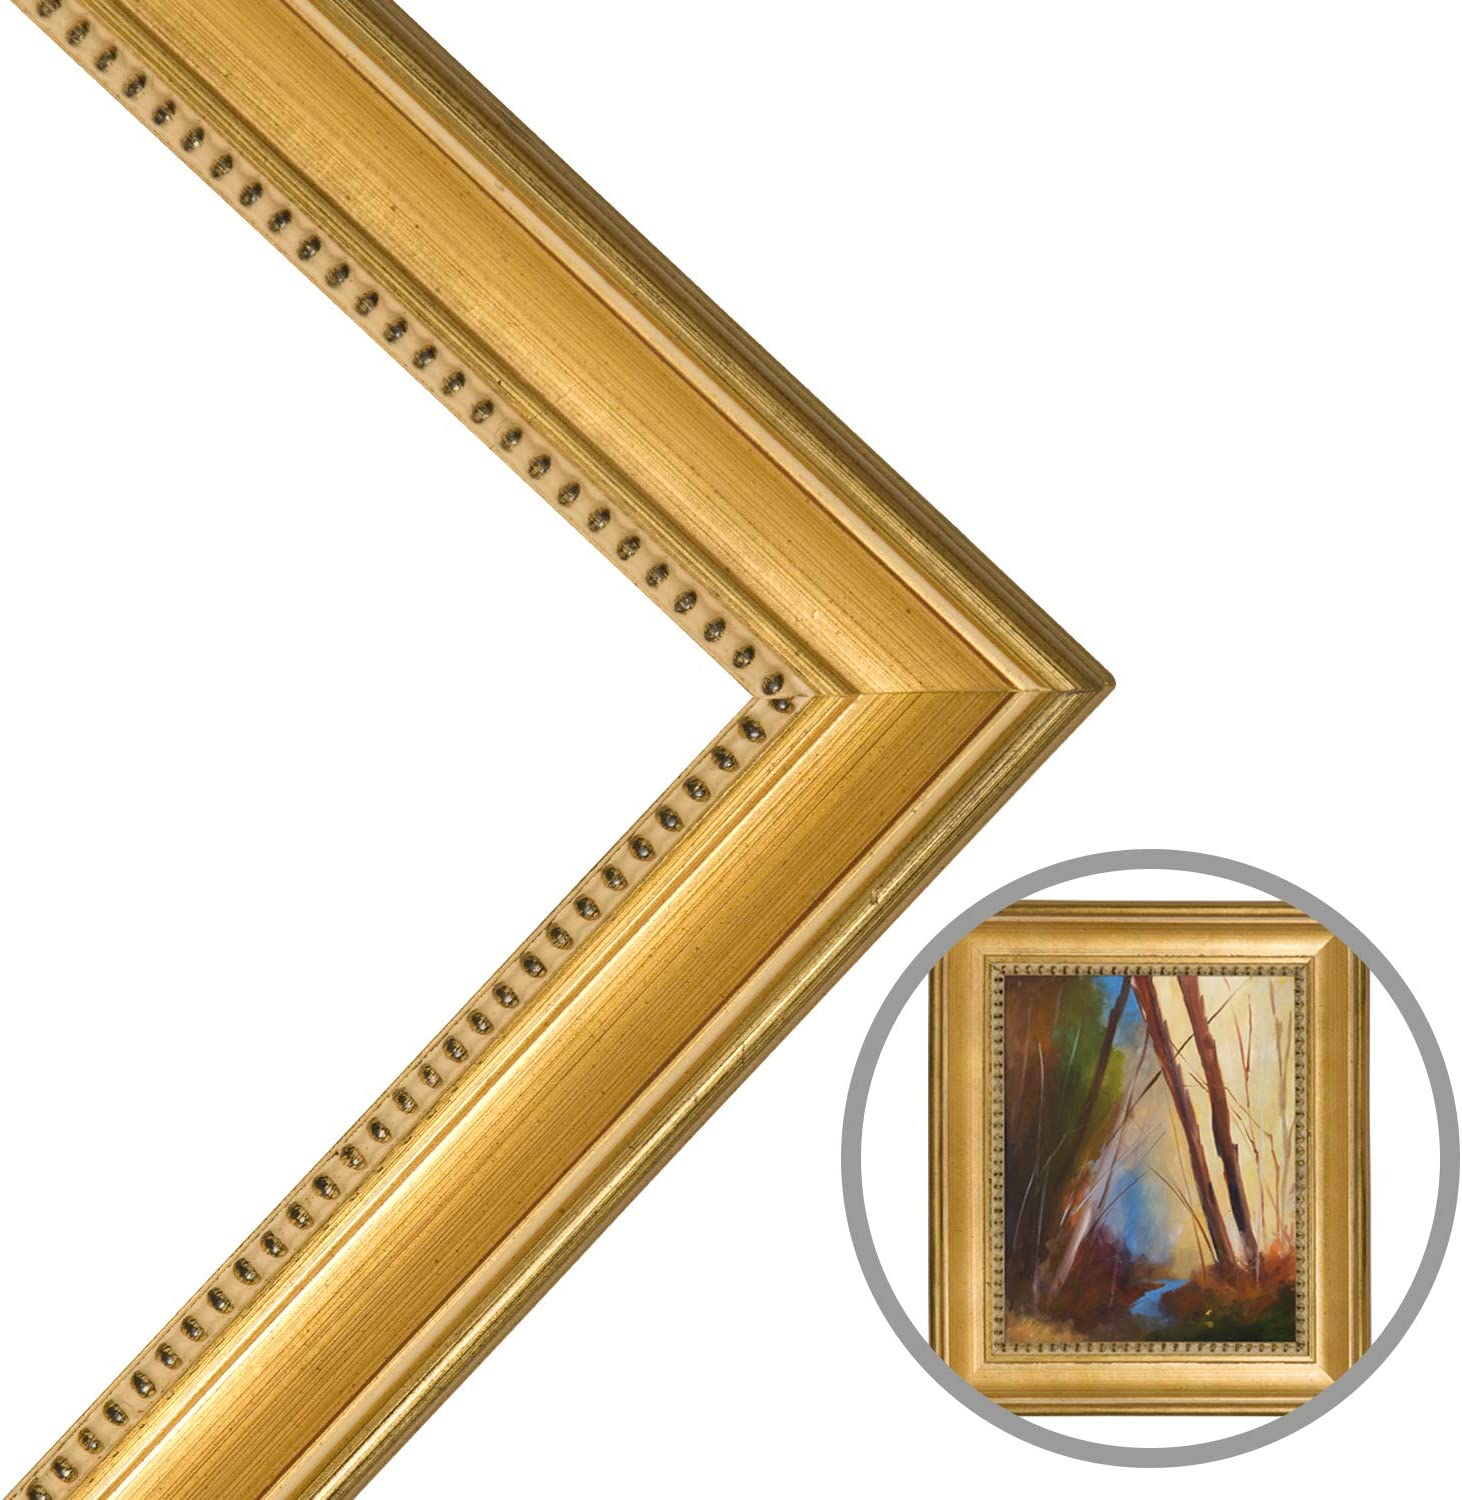 Classique 55 Gold Leaf Solid Wood Width Low price Made Ready 2